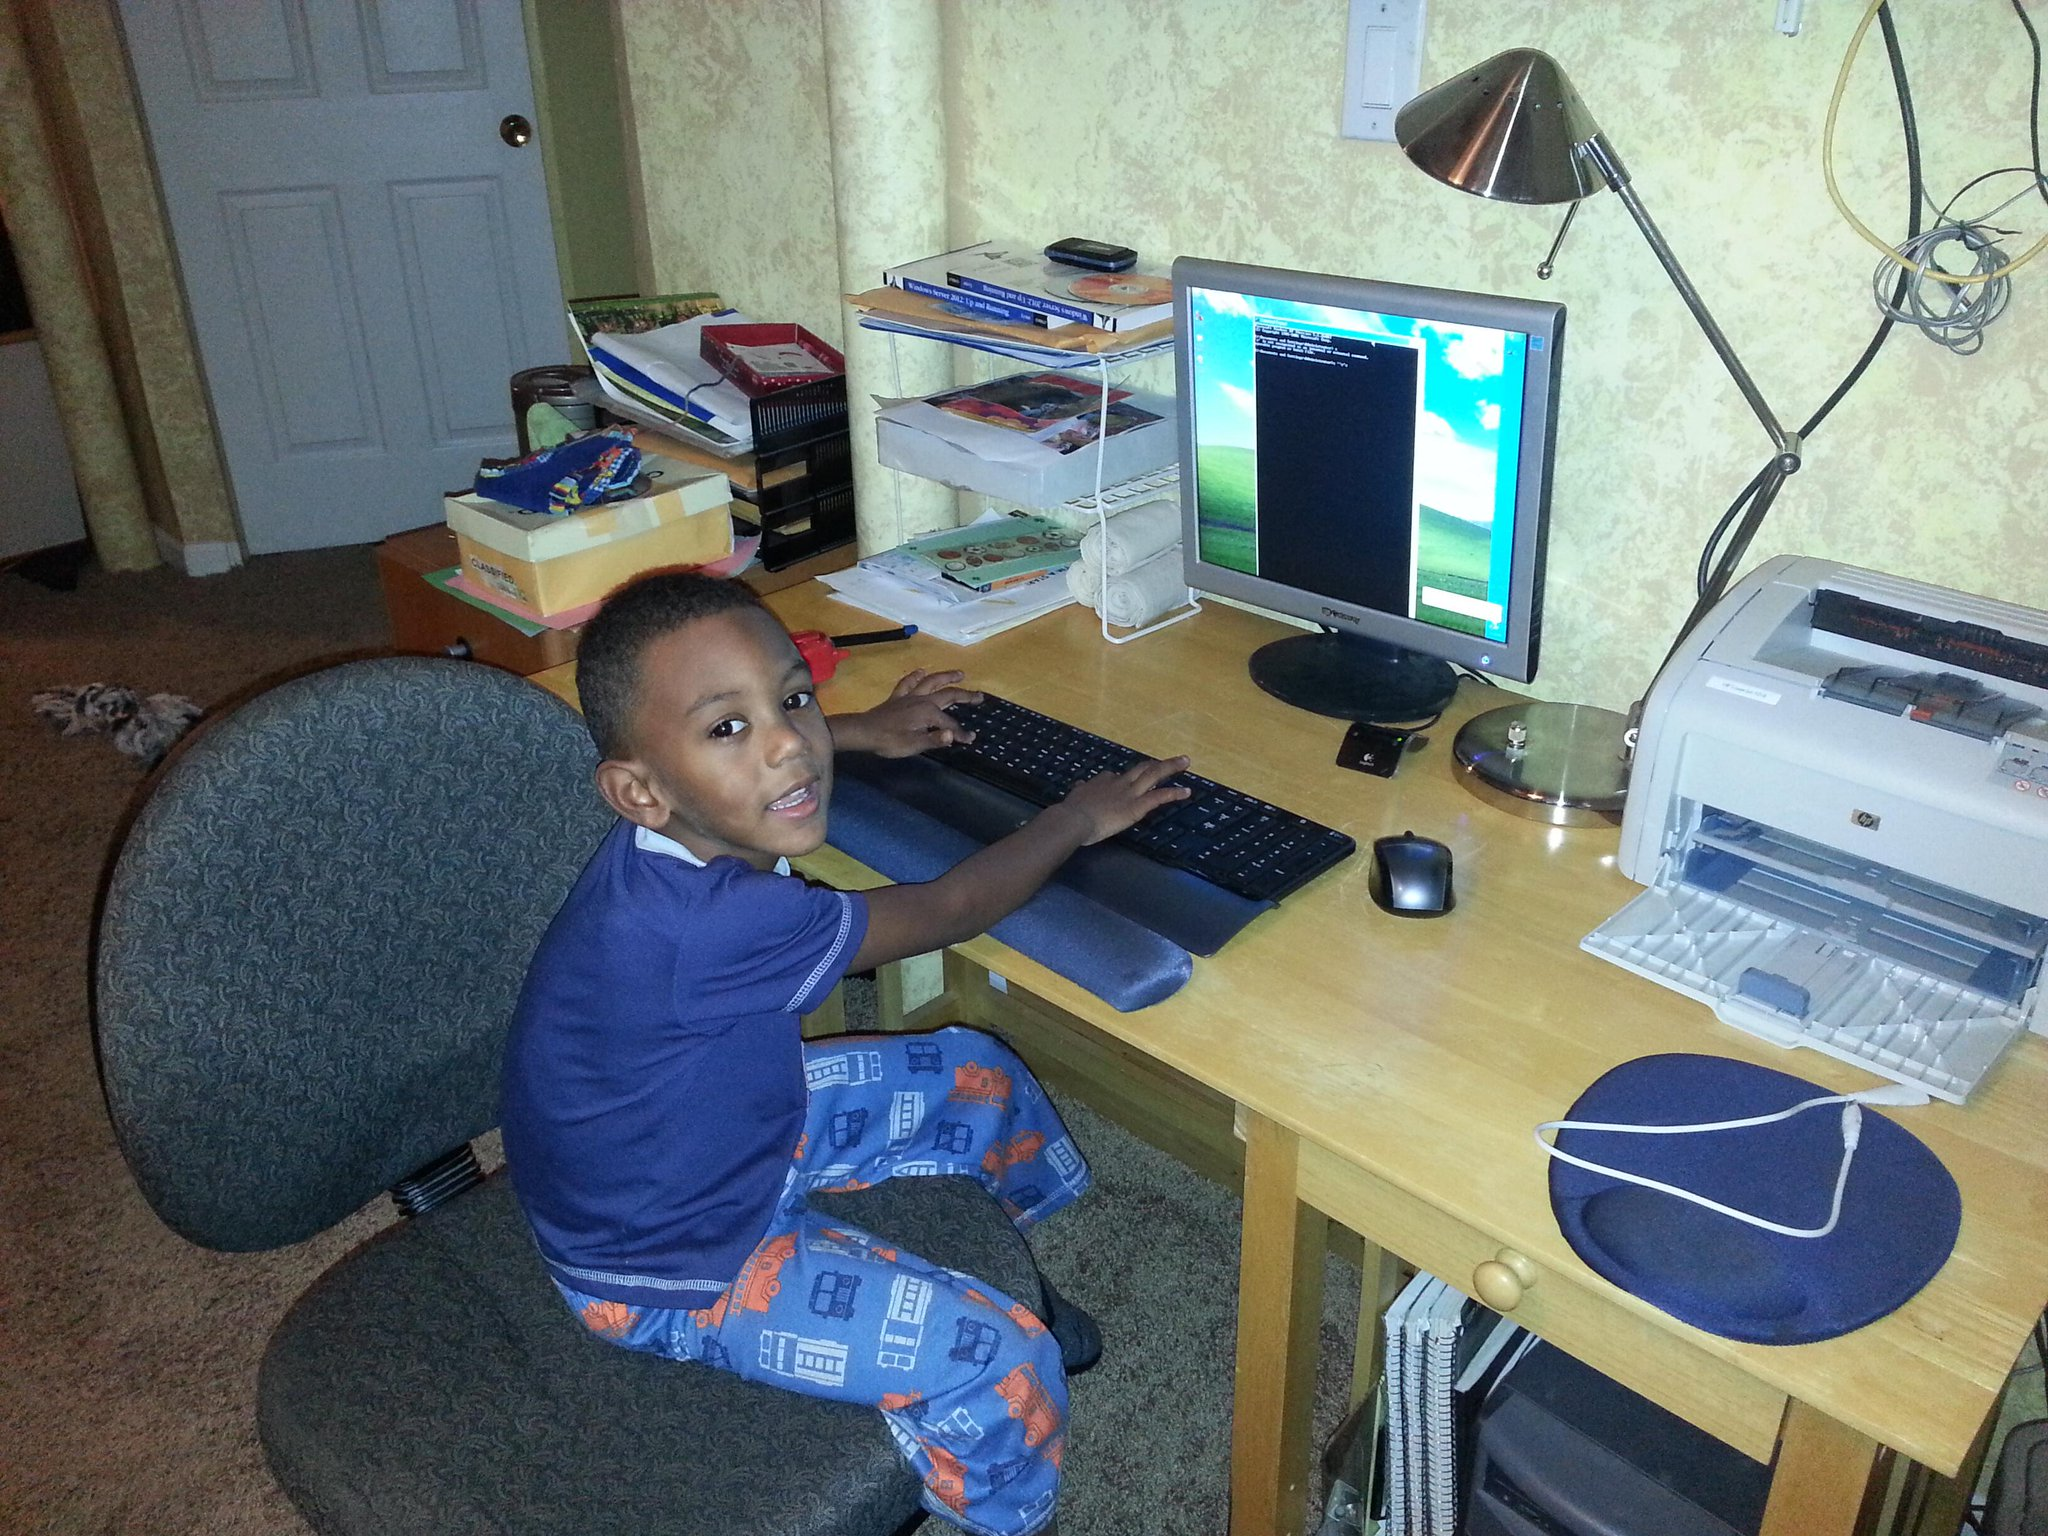 RT @blkintechnology: My son learning the ways of the #commandline #clijedi #NPRBlacksinTech http://t.co/D9dufTQzLt